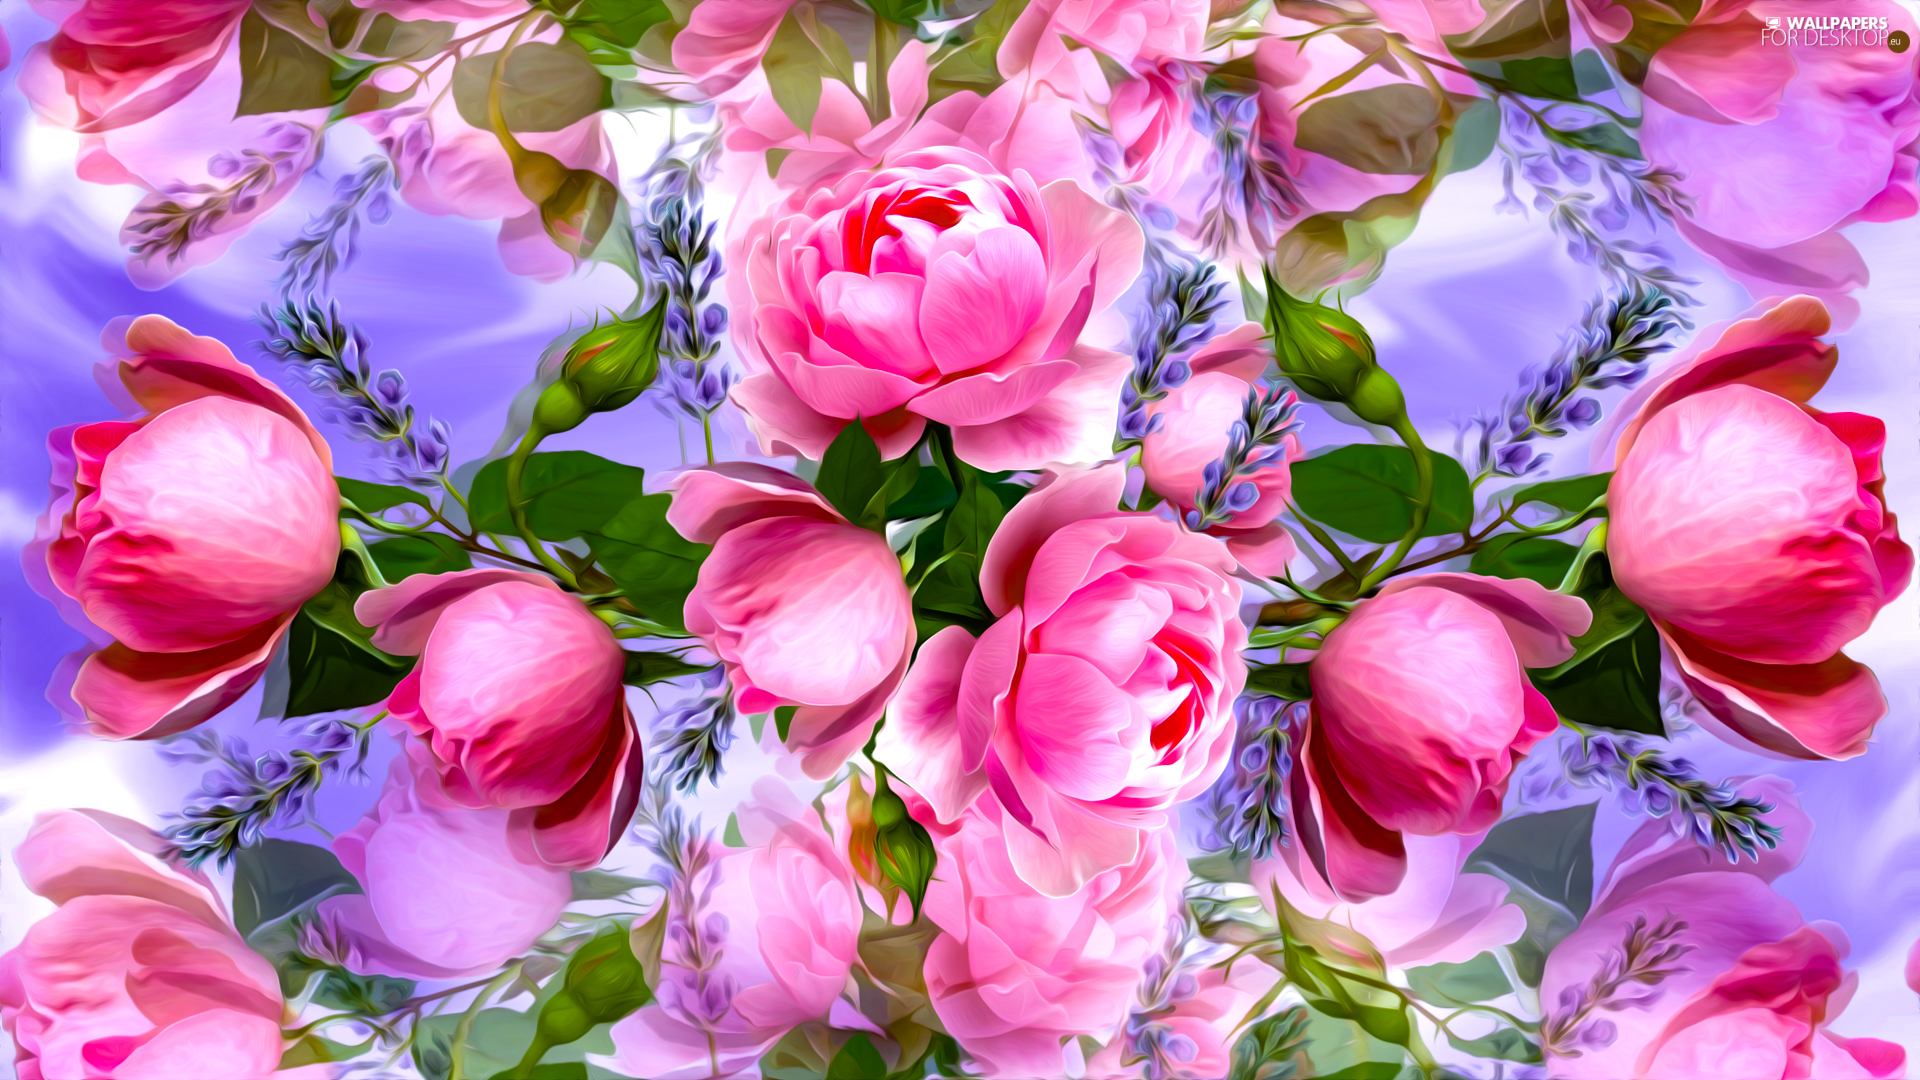 background, graphics, roses, fuzzy, Flowers